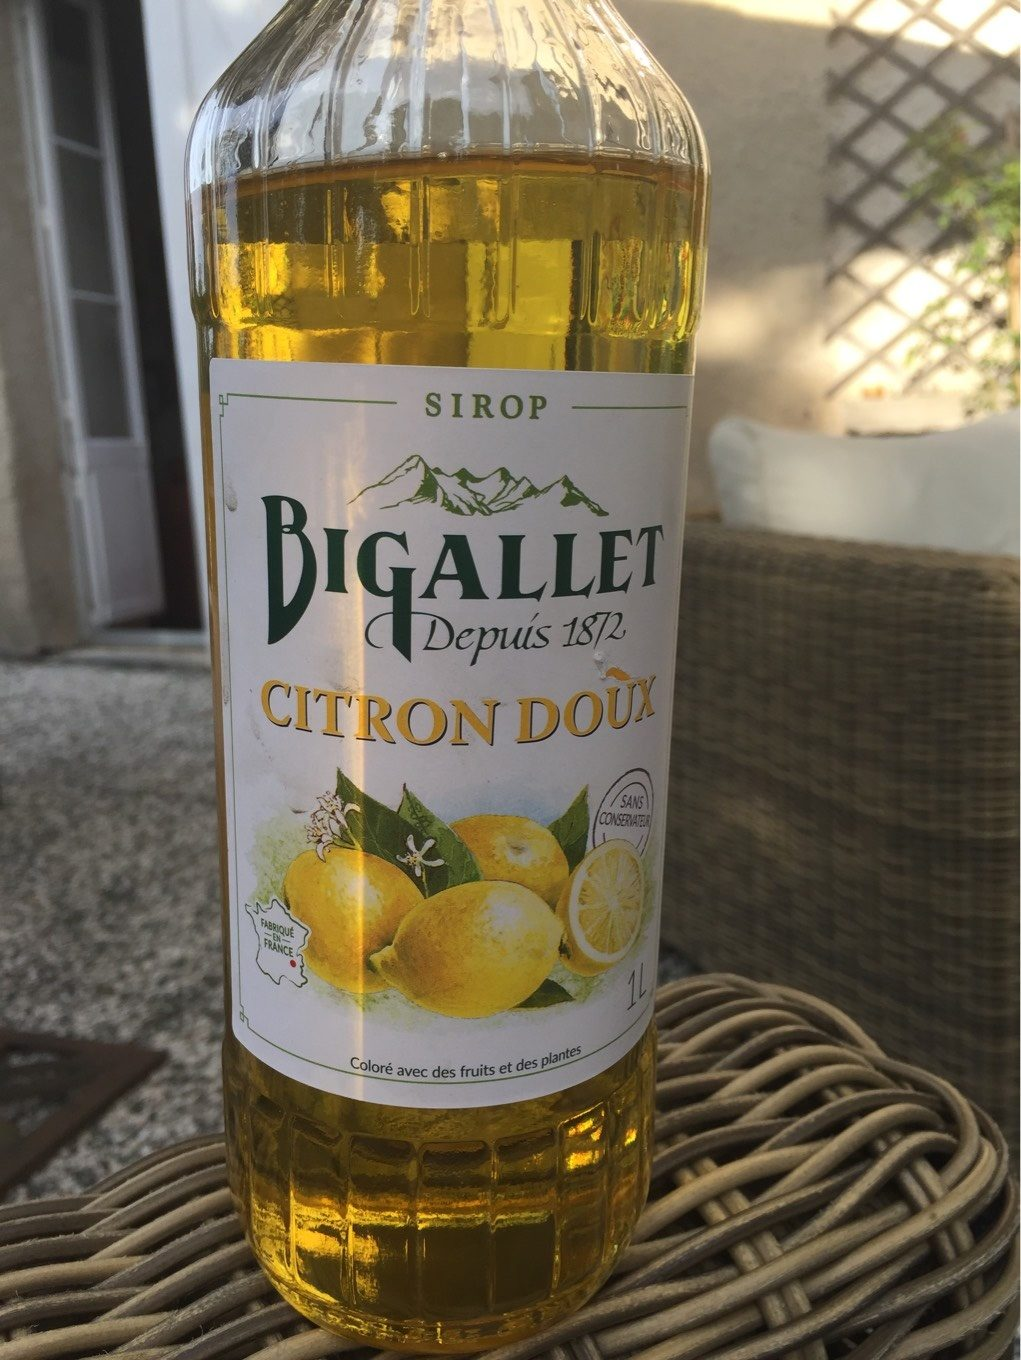 Sirop citron doux - Product